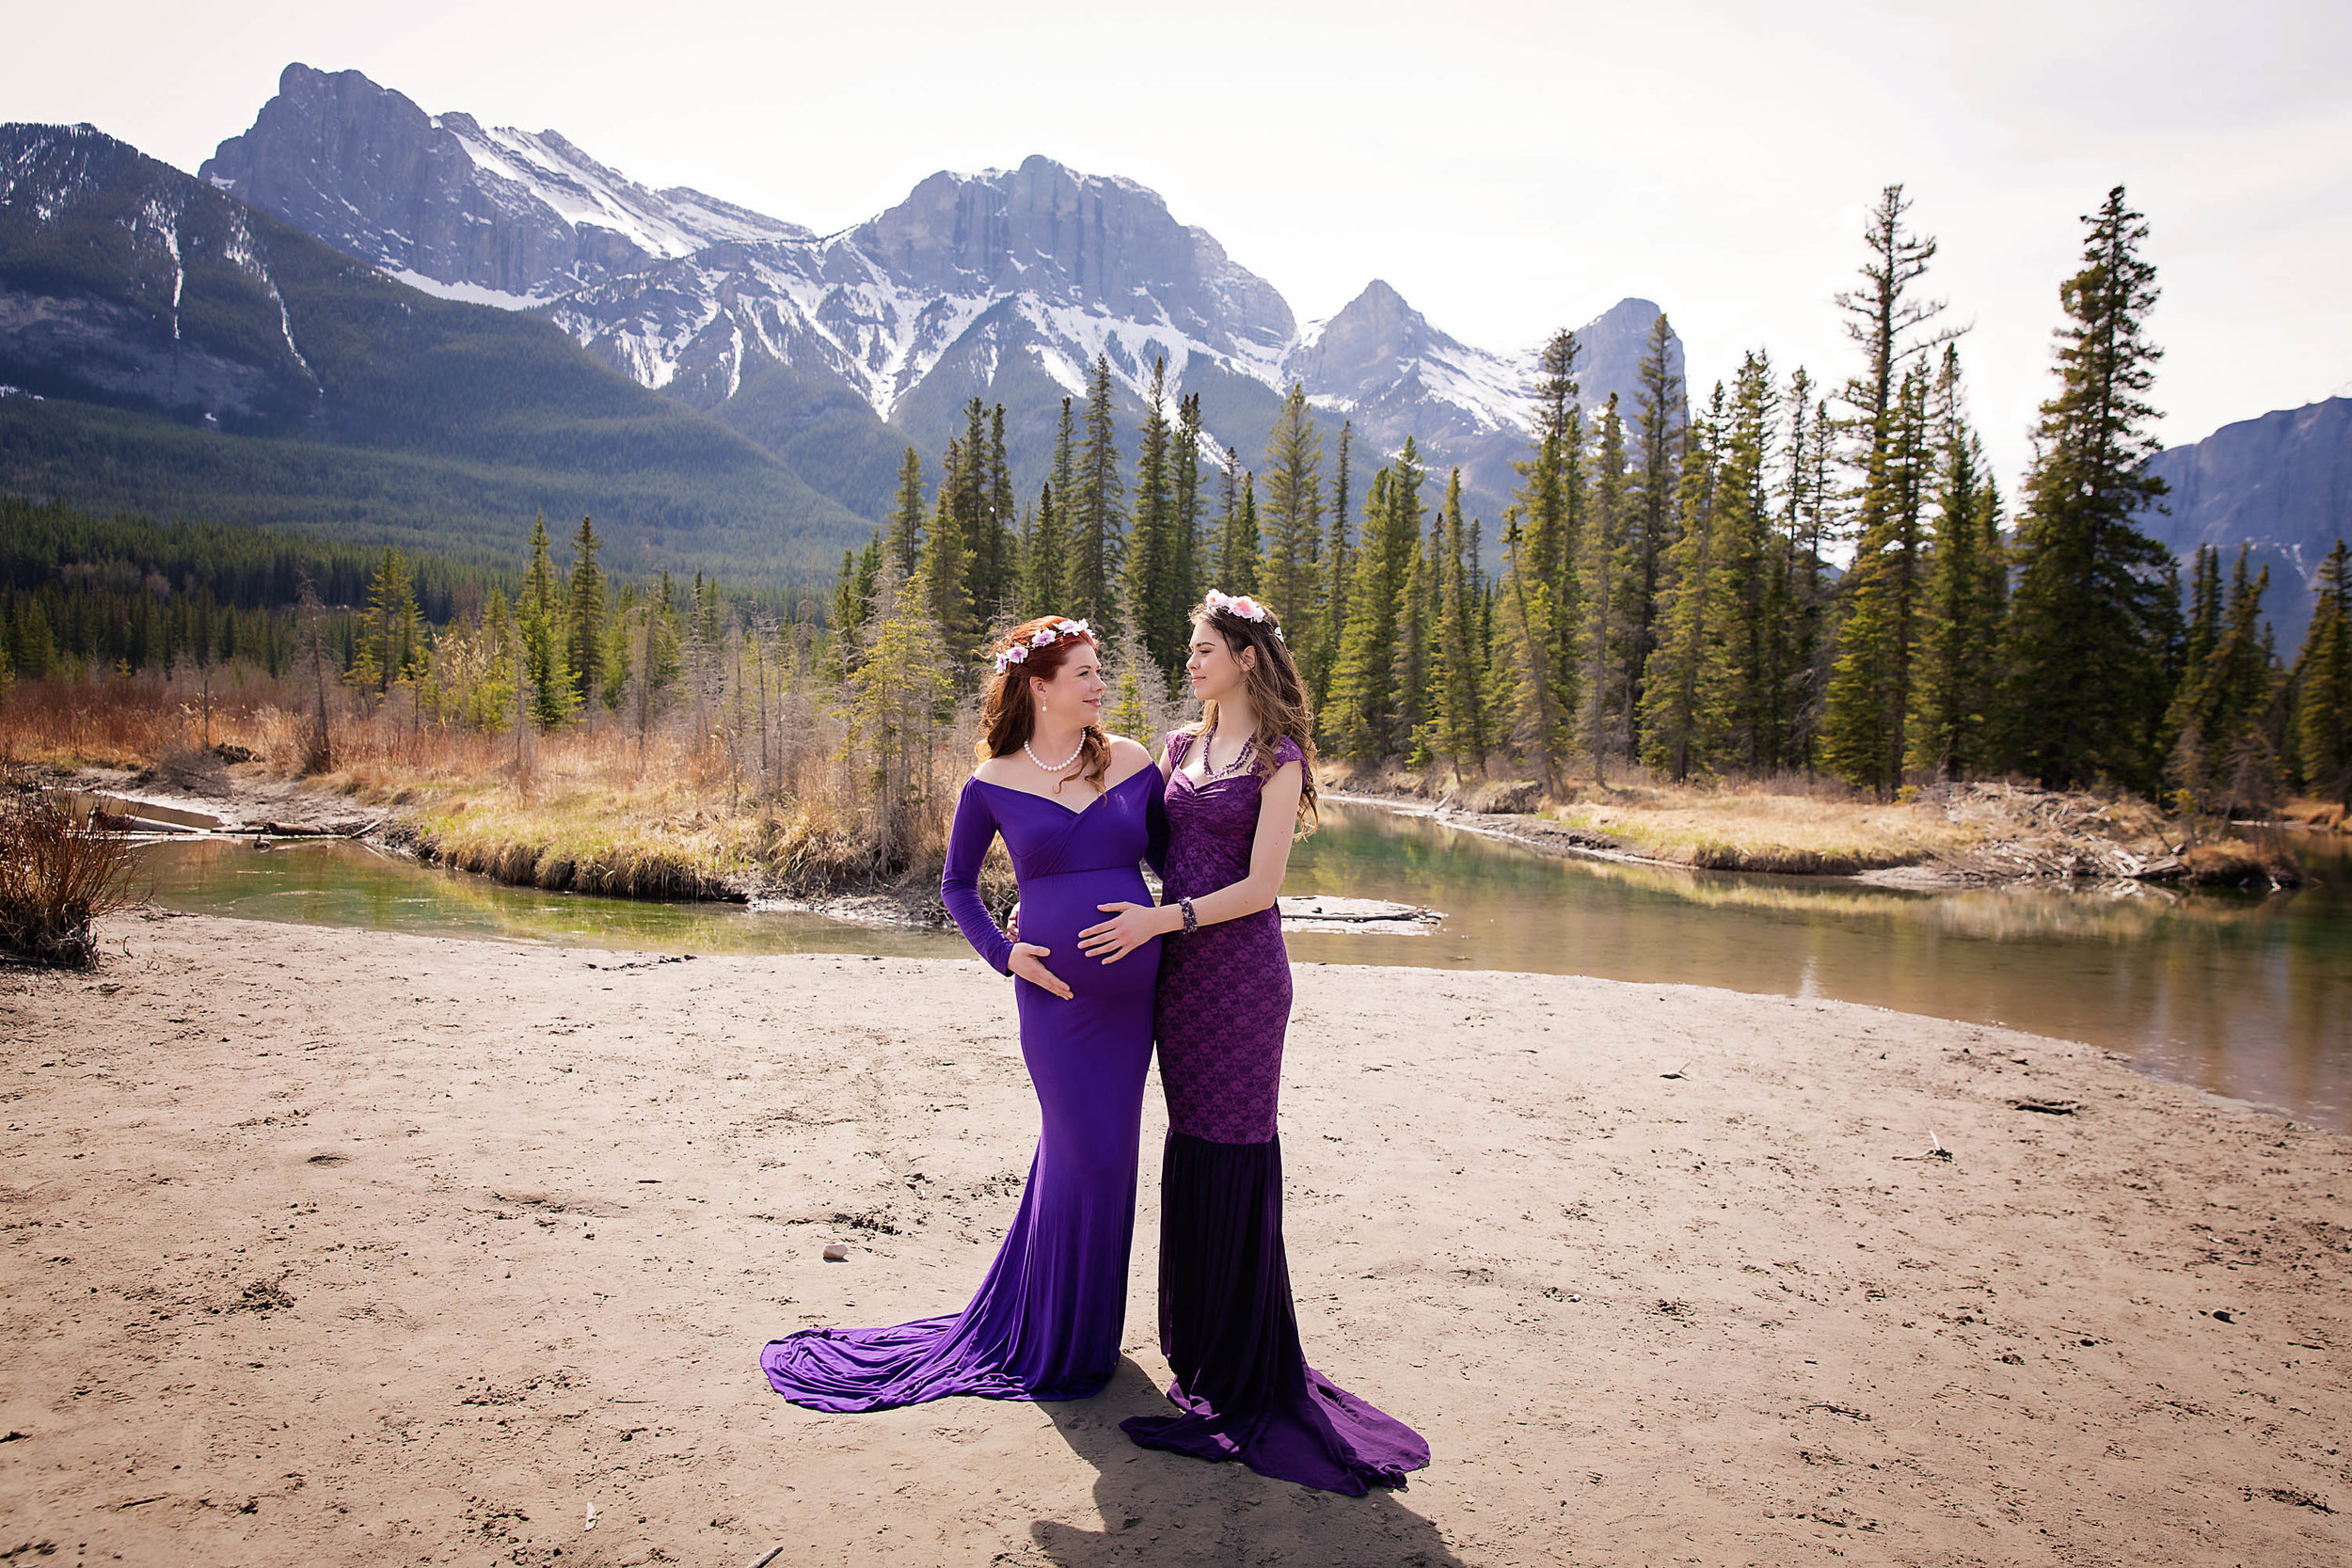 Mother and teenage daughter maternity shot. Both are wearing purple gowns and looking at each other.